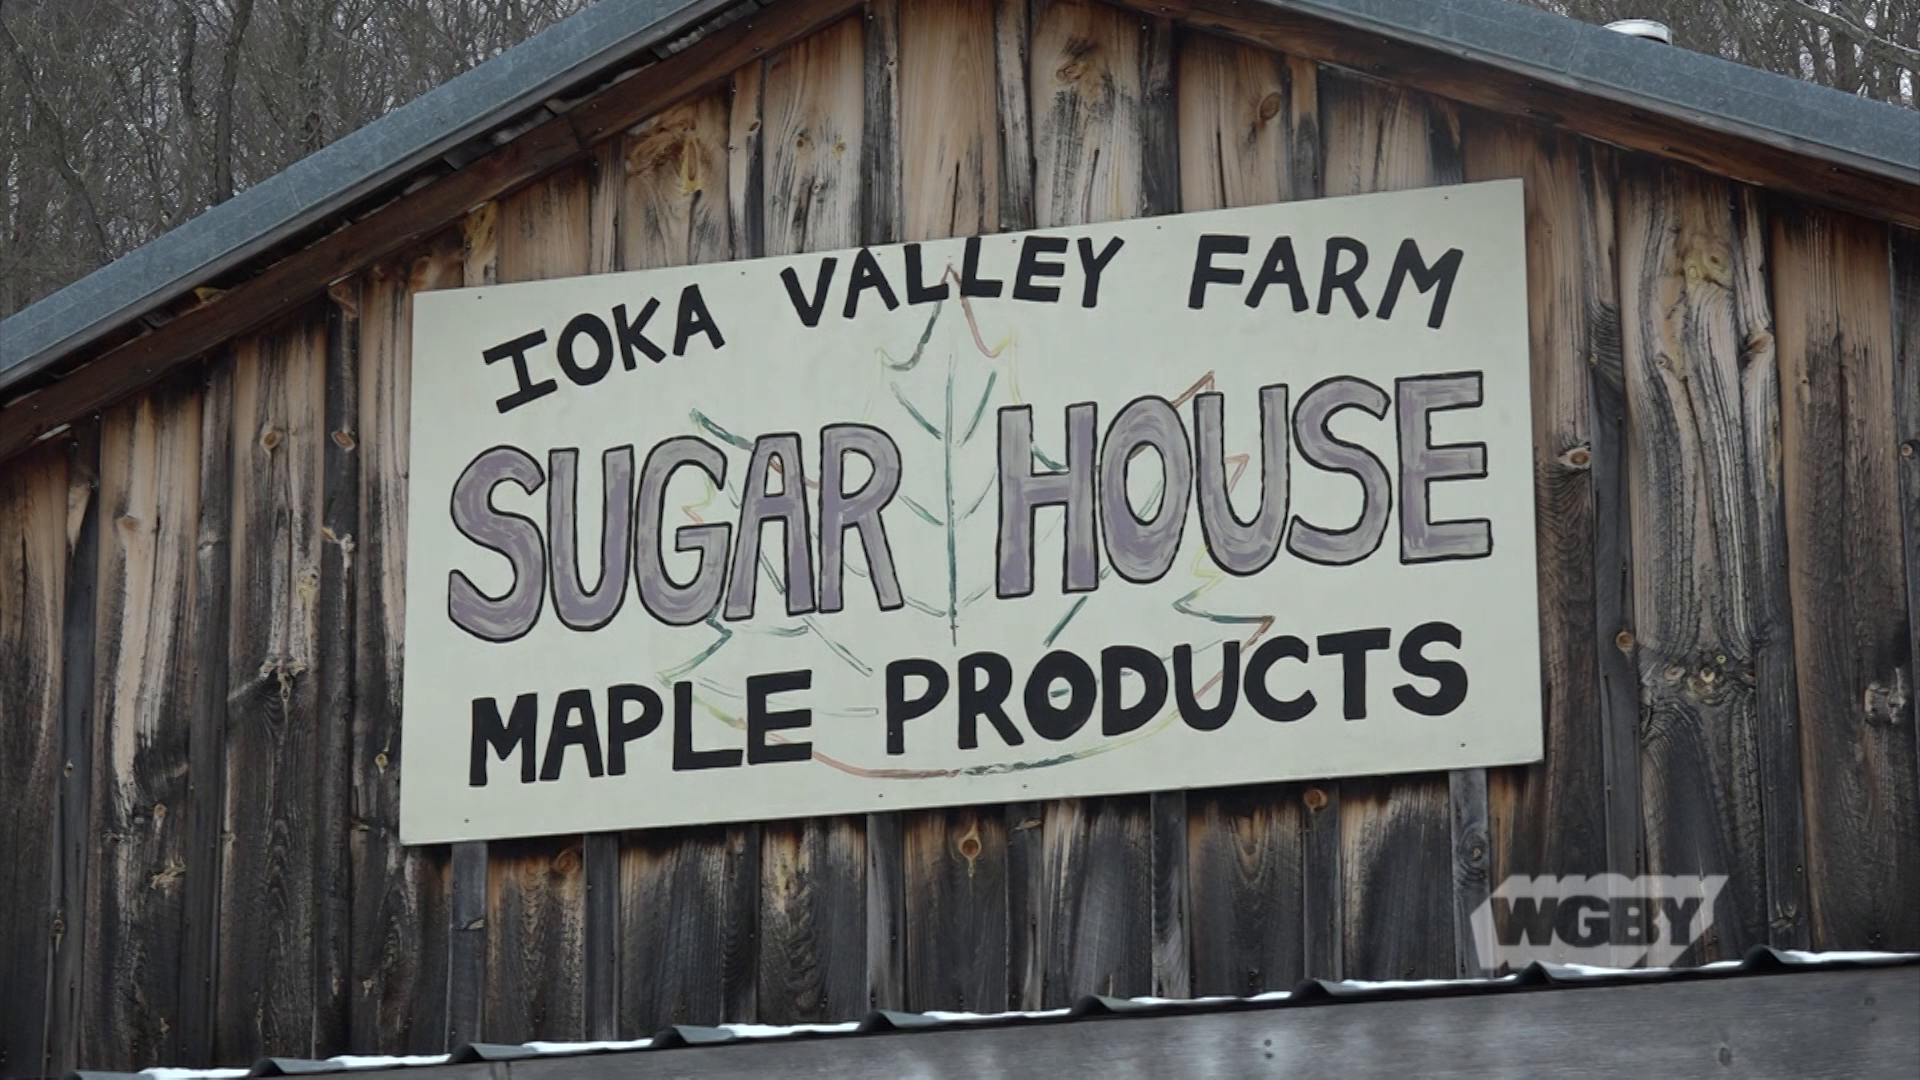 Maple sugaring season is still a few weeks away, but at Dufresne's Sugar House and Ioka Valley Farm, the pre-season prepwork is keeping farmers busy.